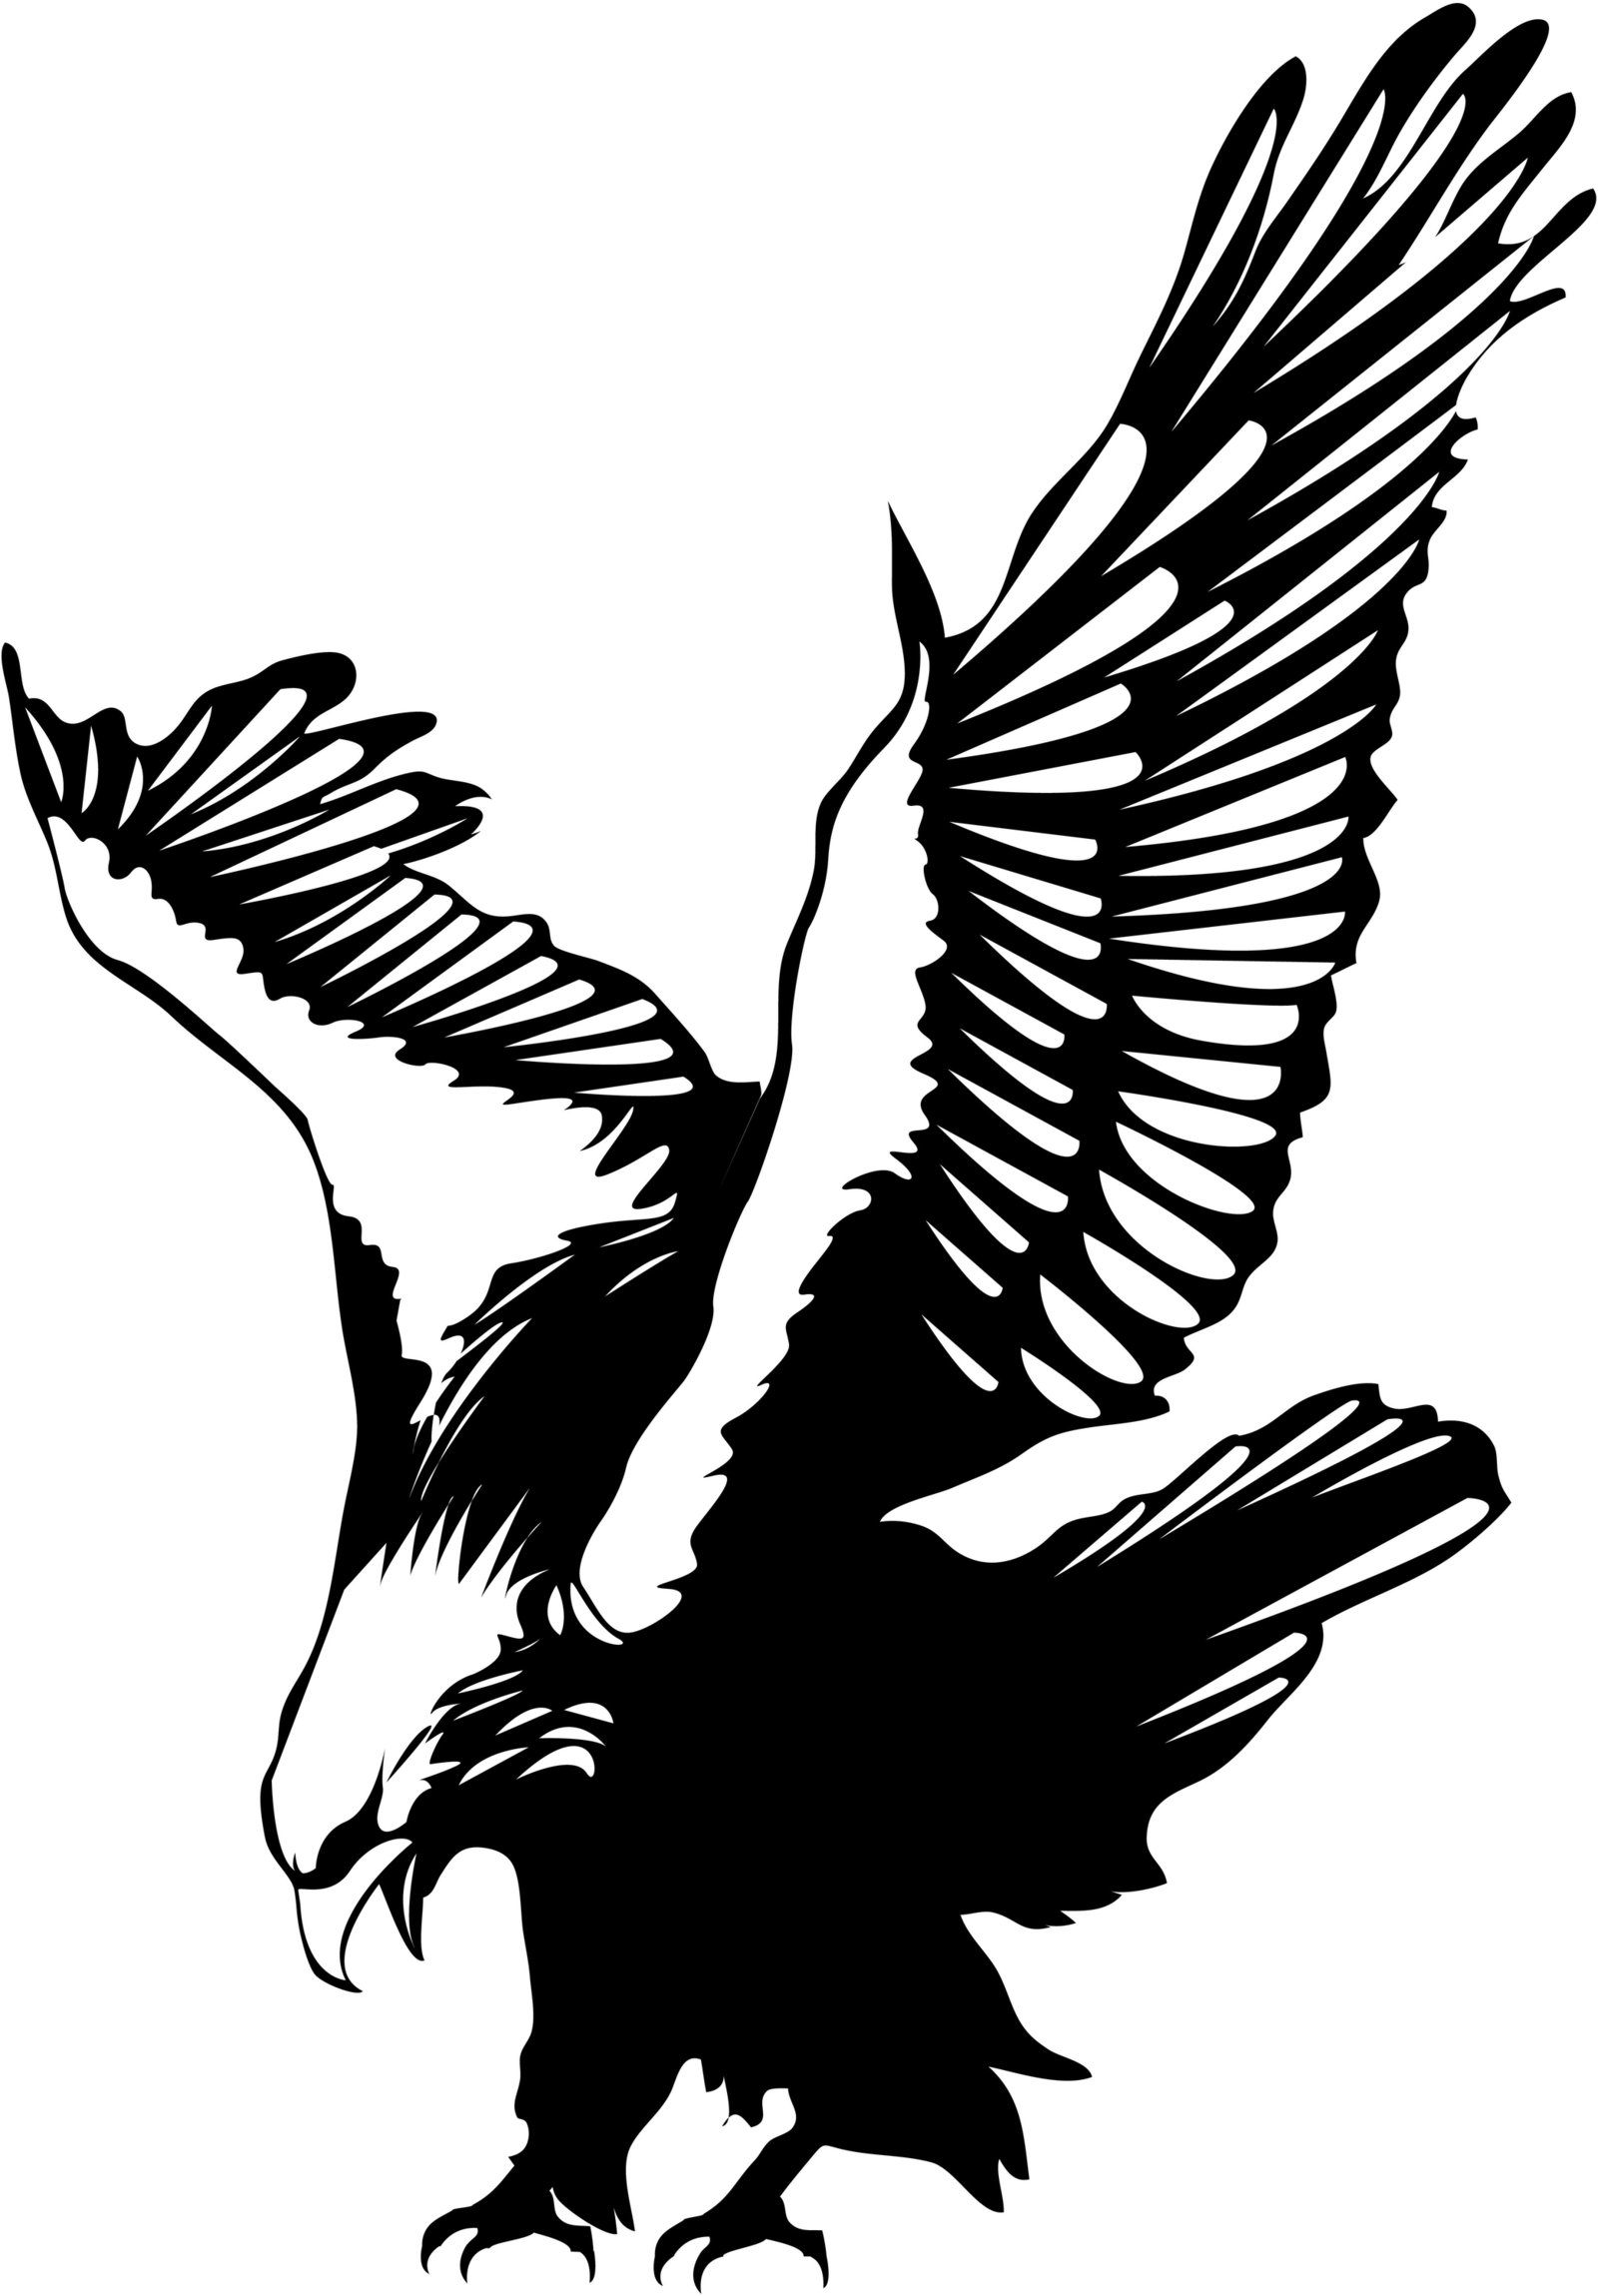 Free Eagle Vector, Download Free Clip Art, Free Clip Art on.